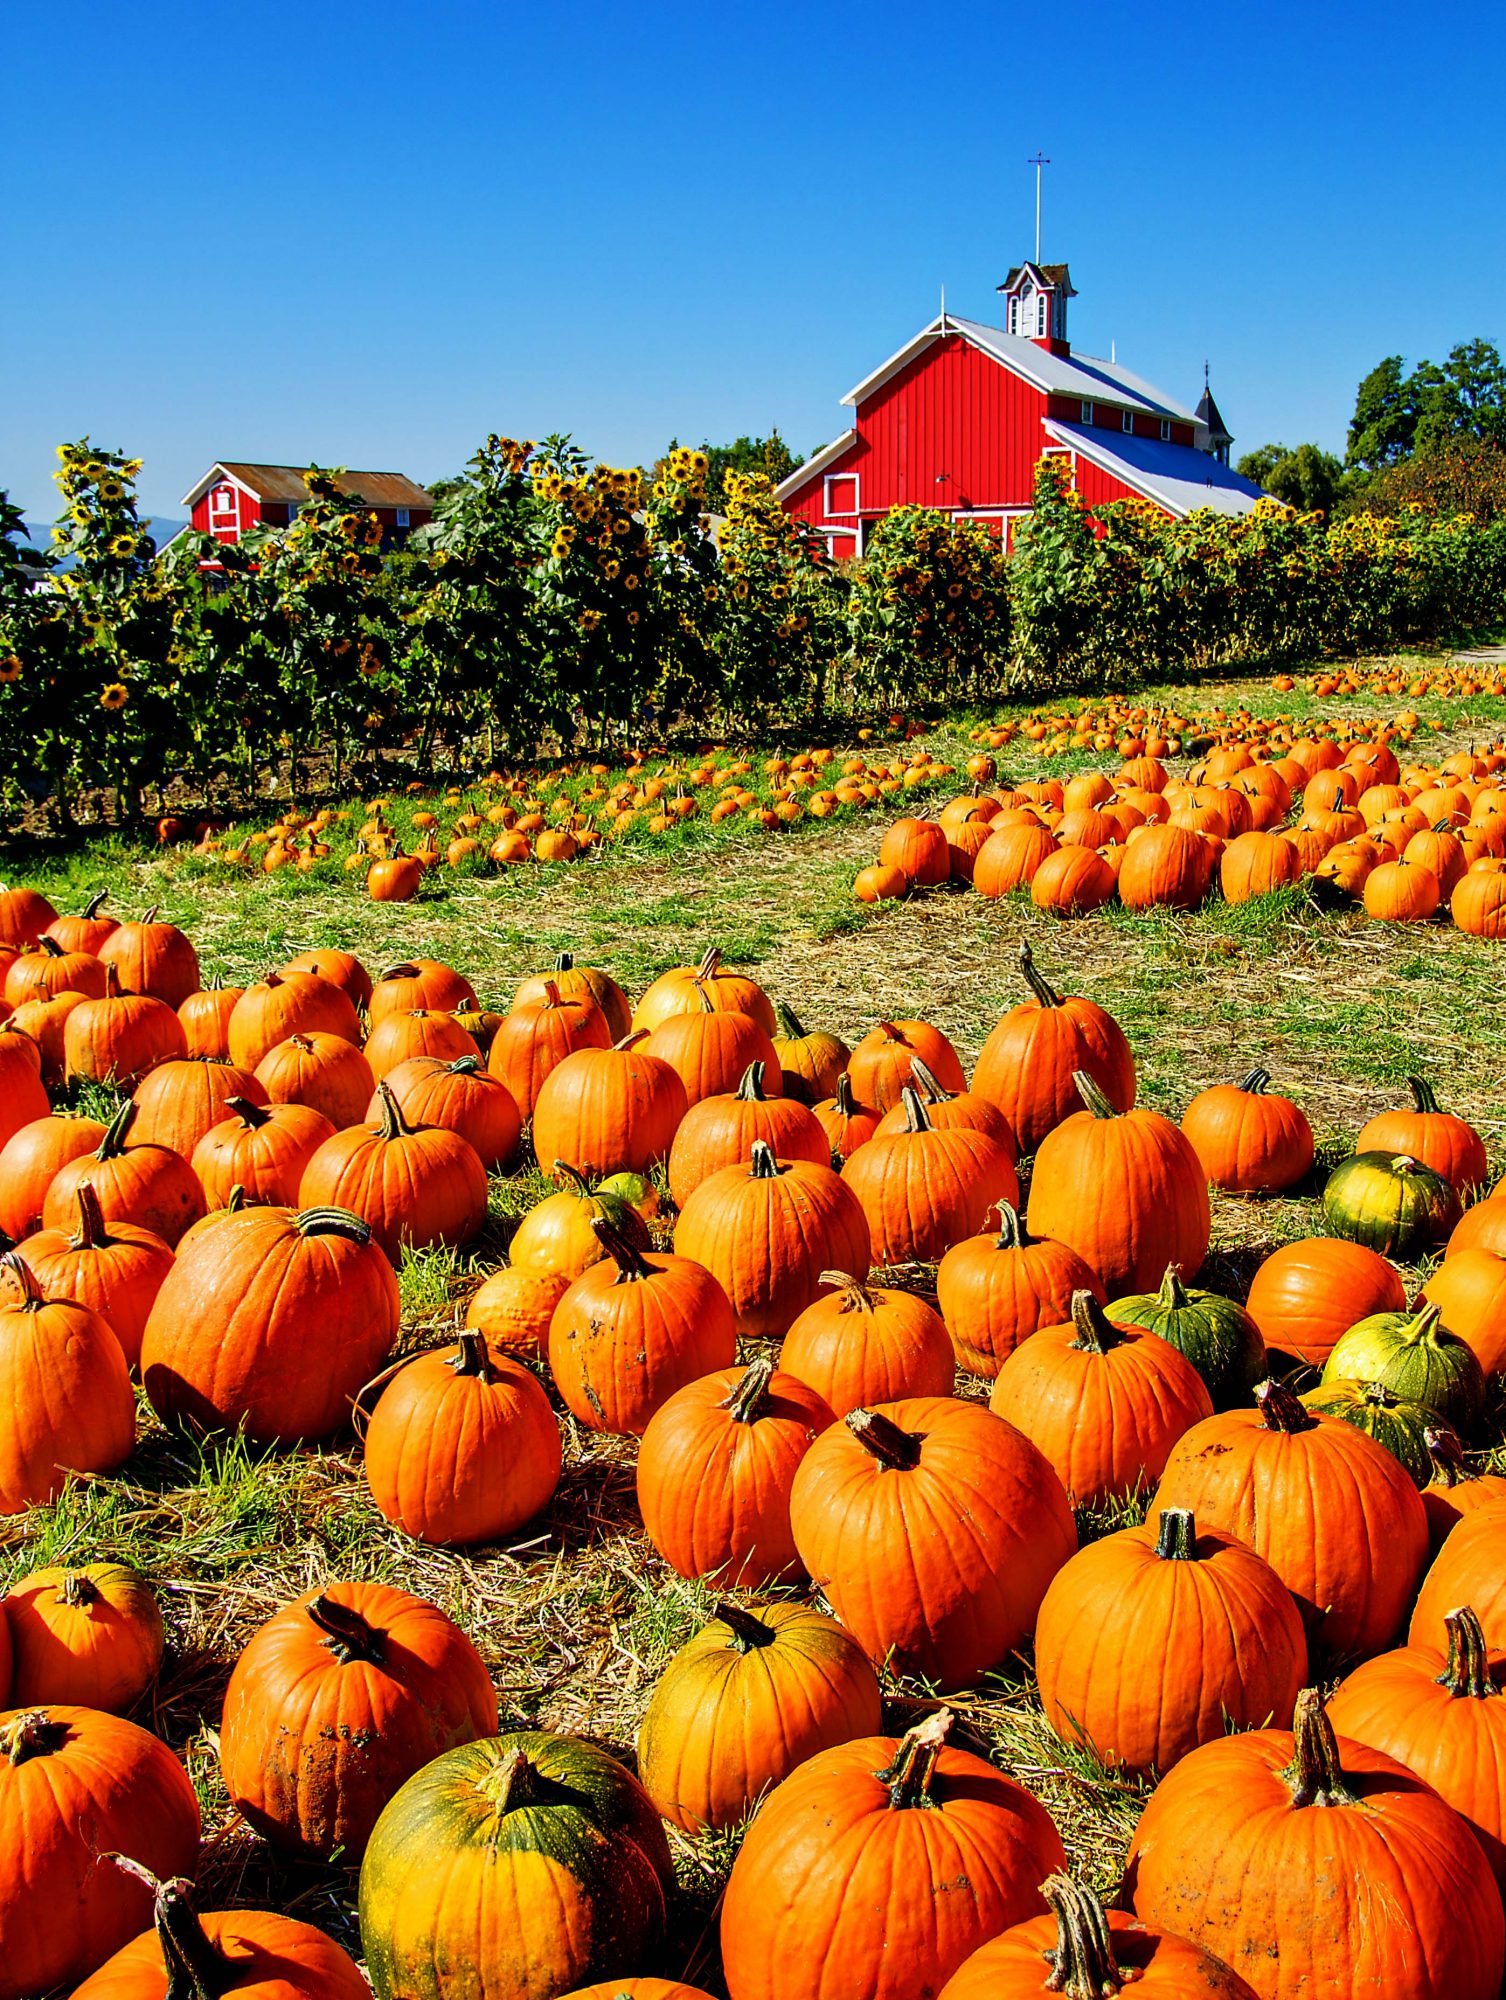 20 incredible ways to decorate with pumpkins this fall southern living - Fall wallpaper pumpkins ...